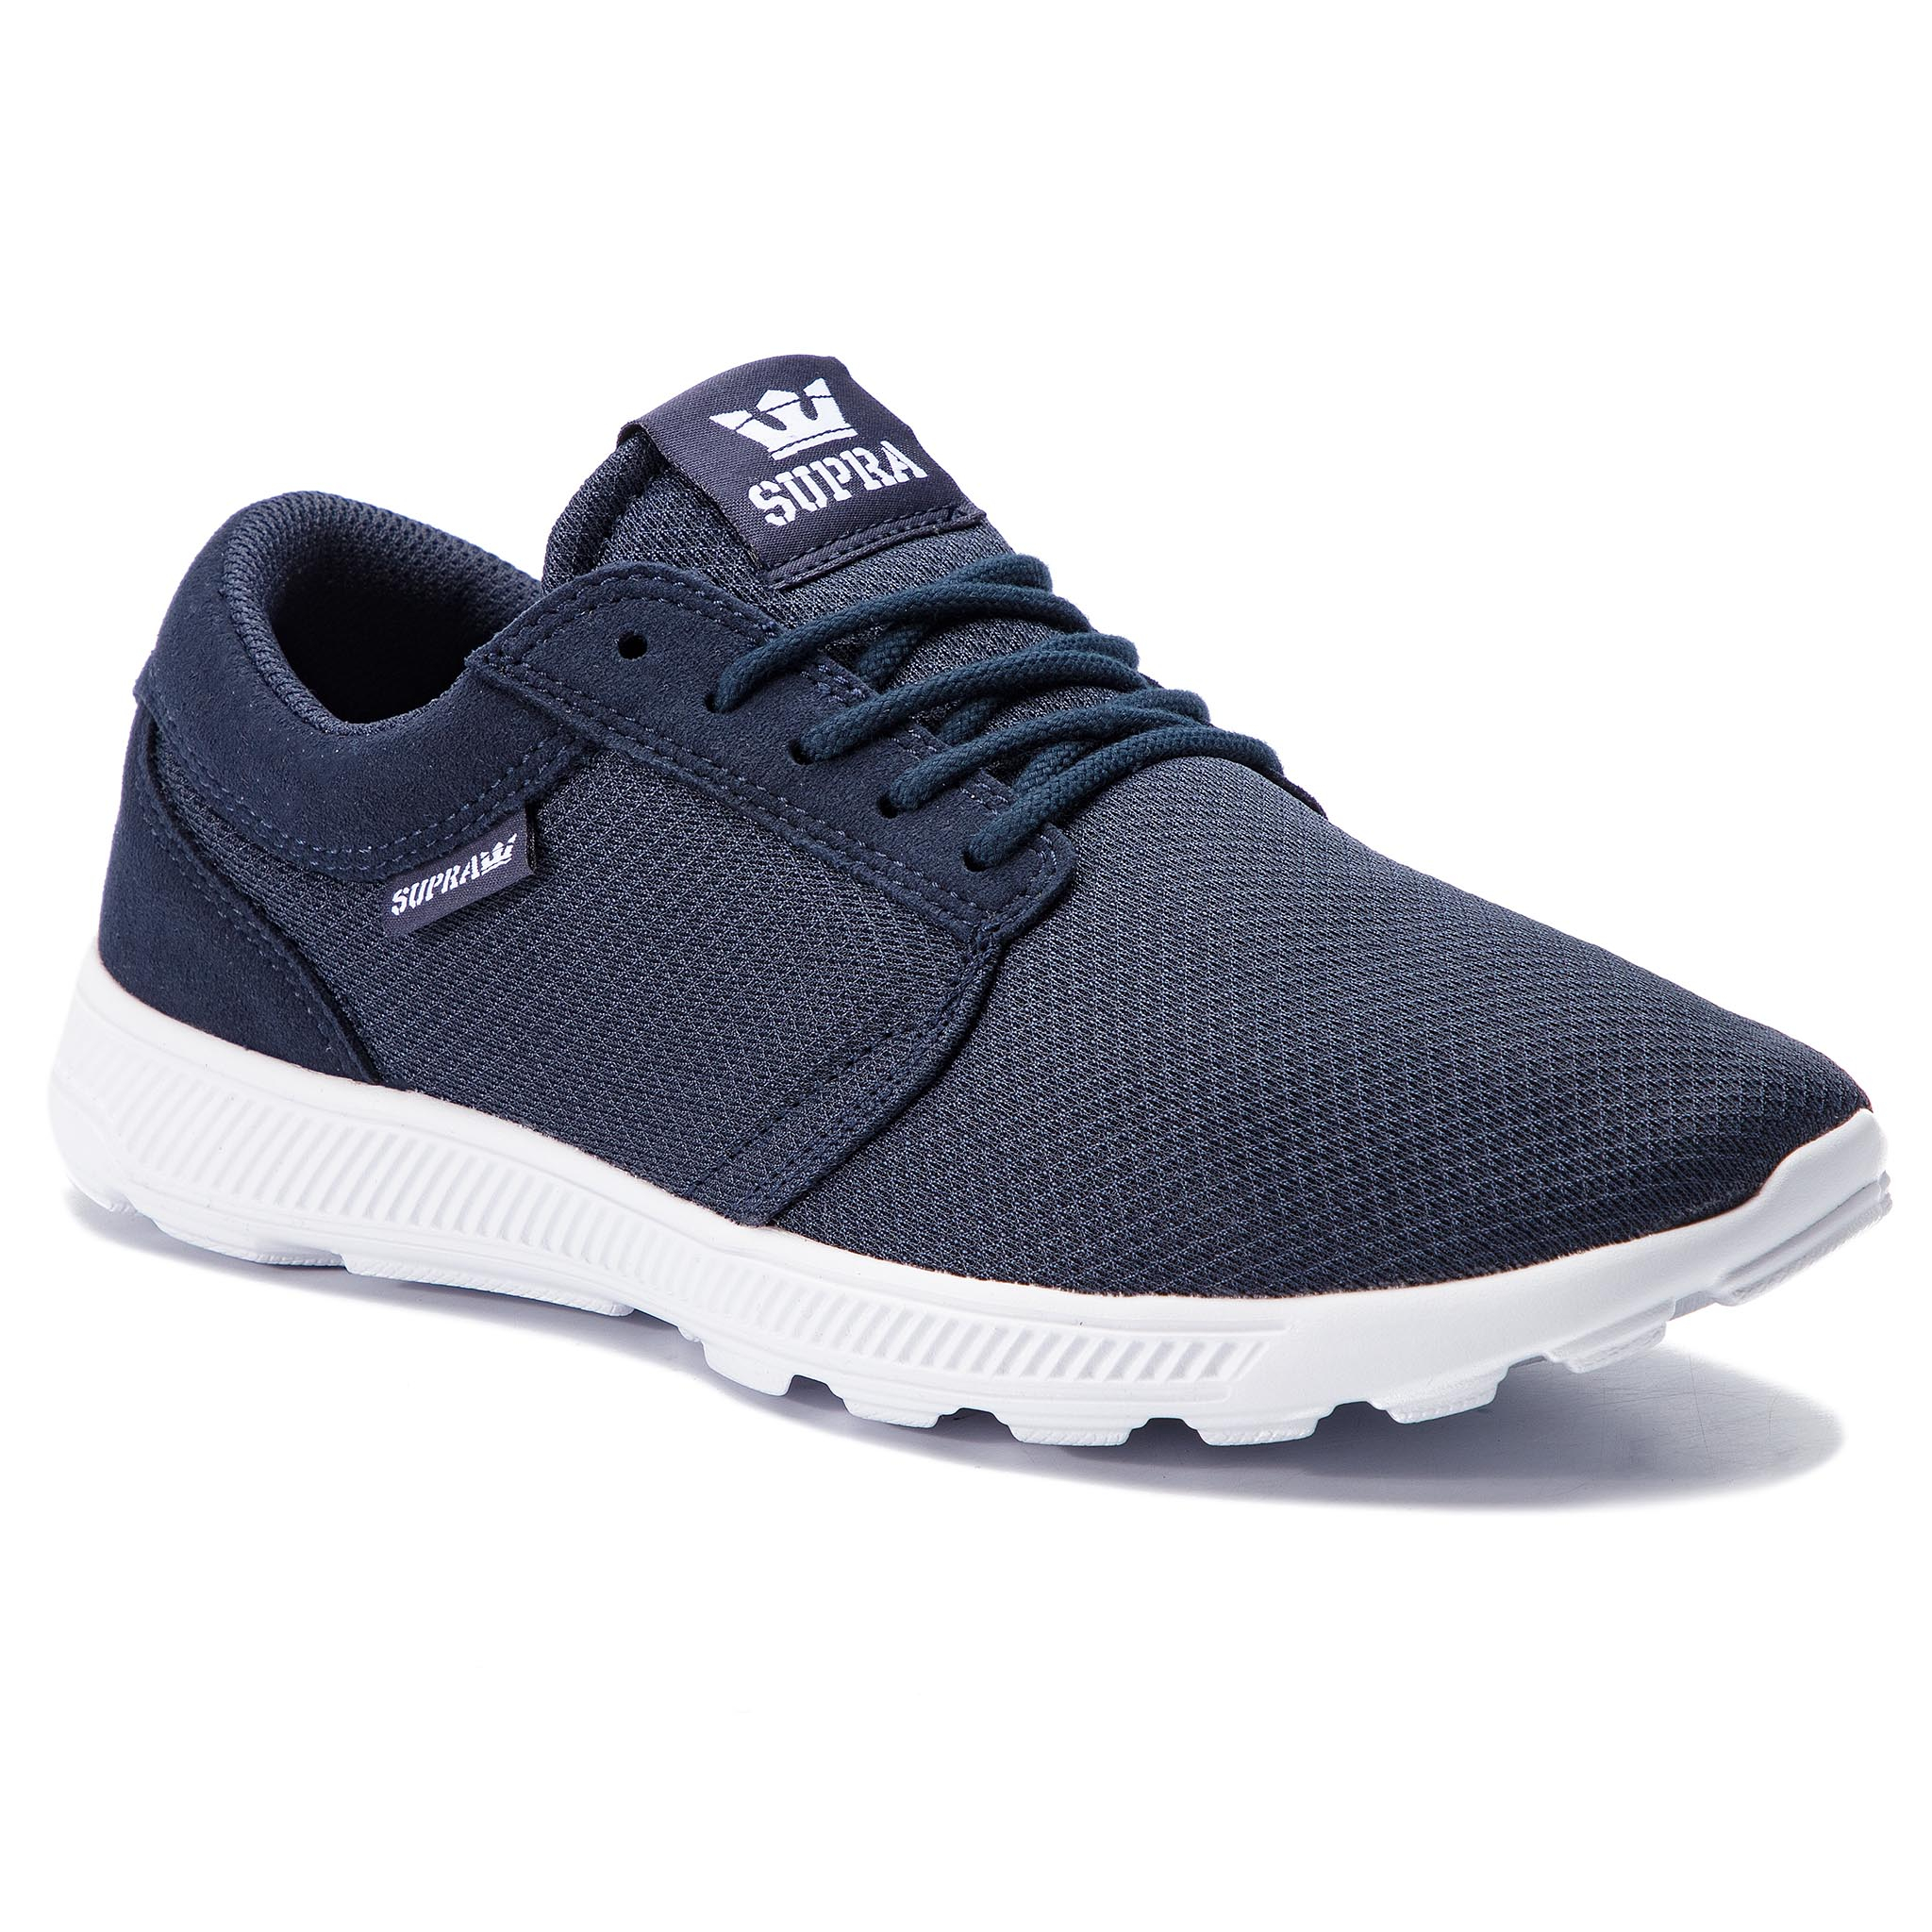 Sneakers SUPRA - Hammer Run 08128-472-M Navy/White White